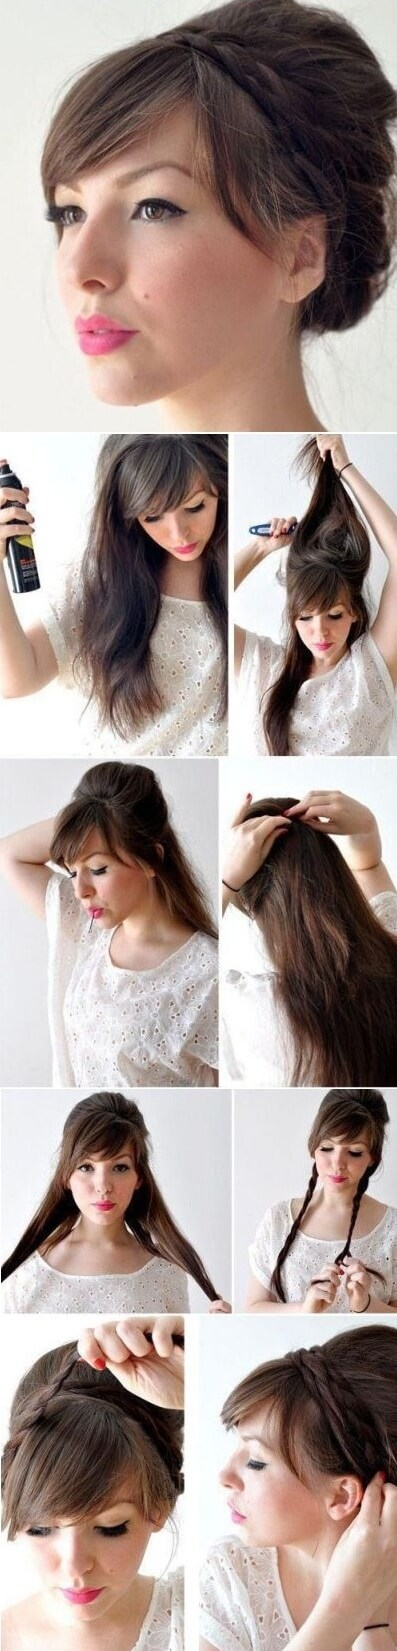 Hairstyle with fleece Elegant Prom Hairstyles For Long & Short Hair